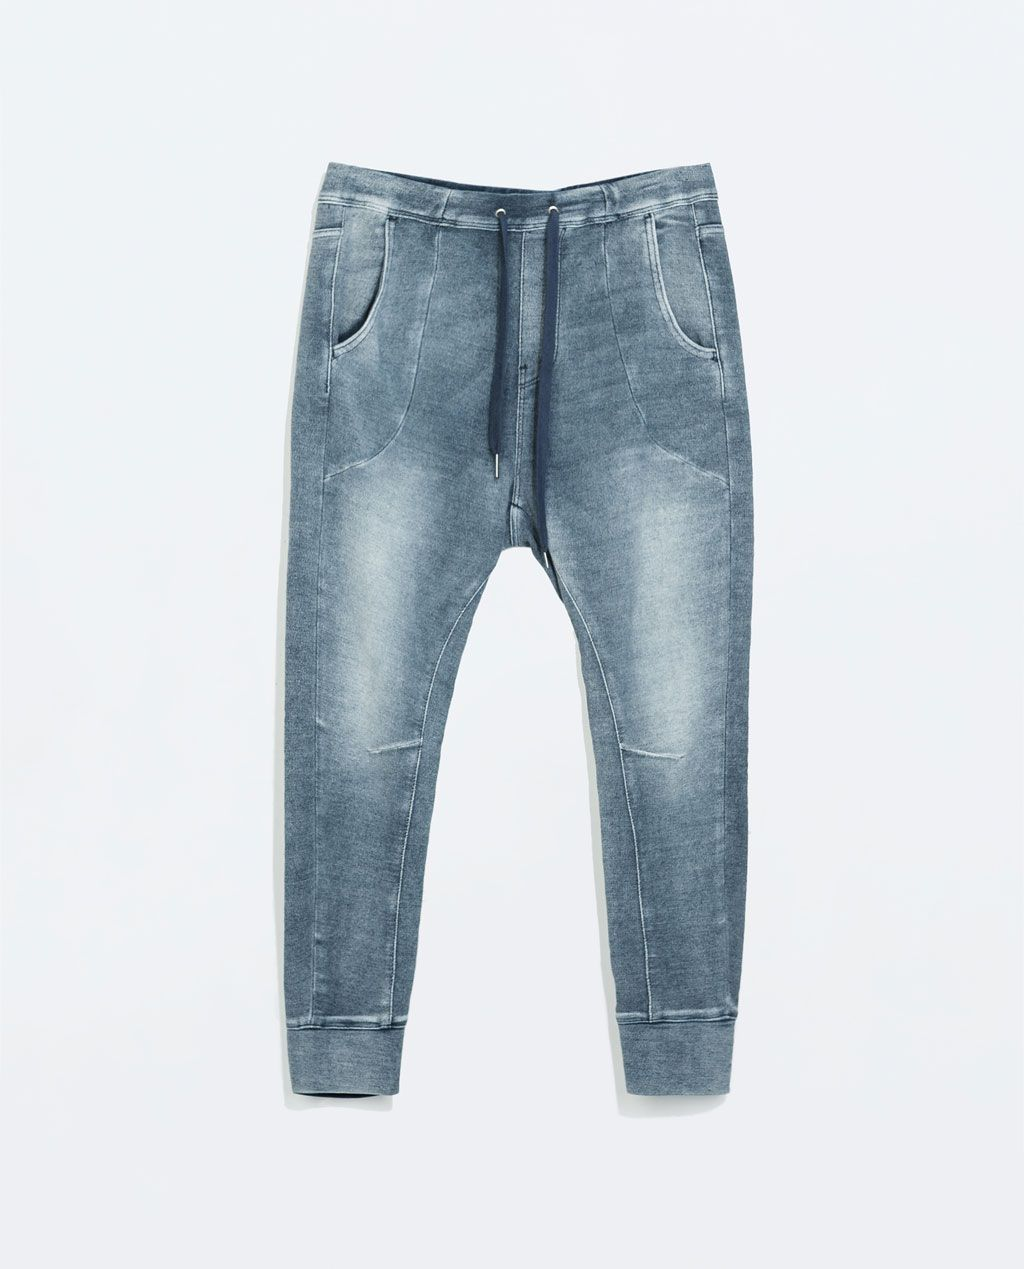 a6bdff2e2d Zara - Terrycloth Jogging Pants | Men's Fashion | Pants, Jogging, Denim